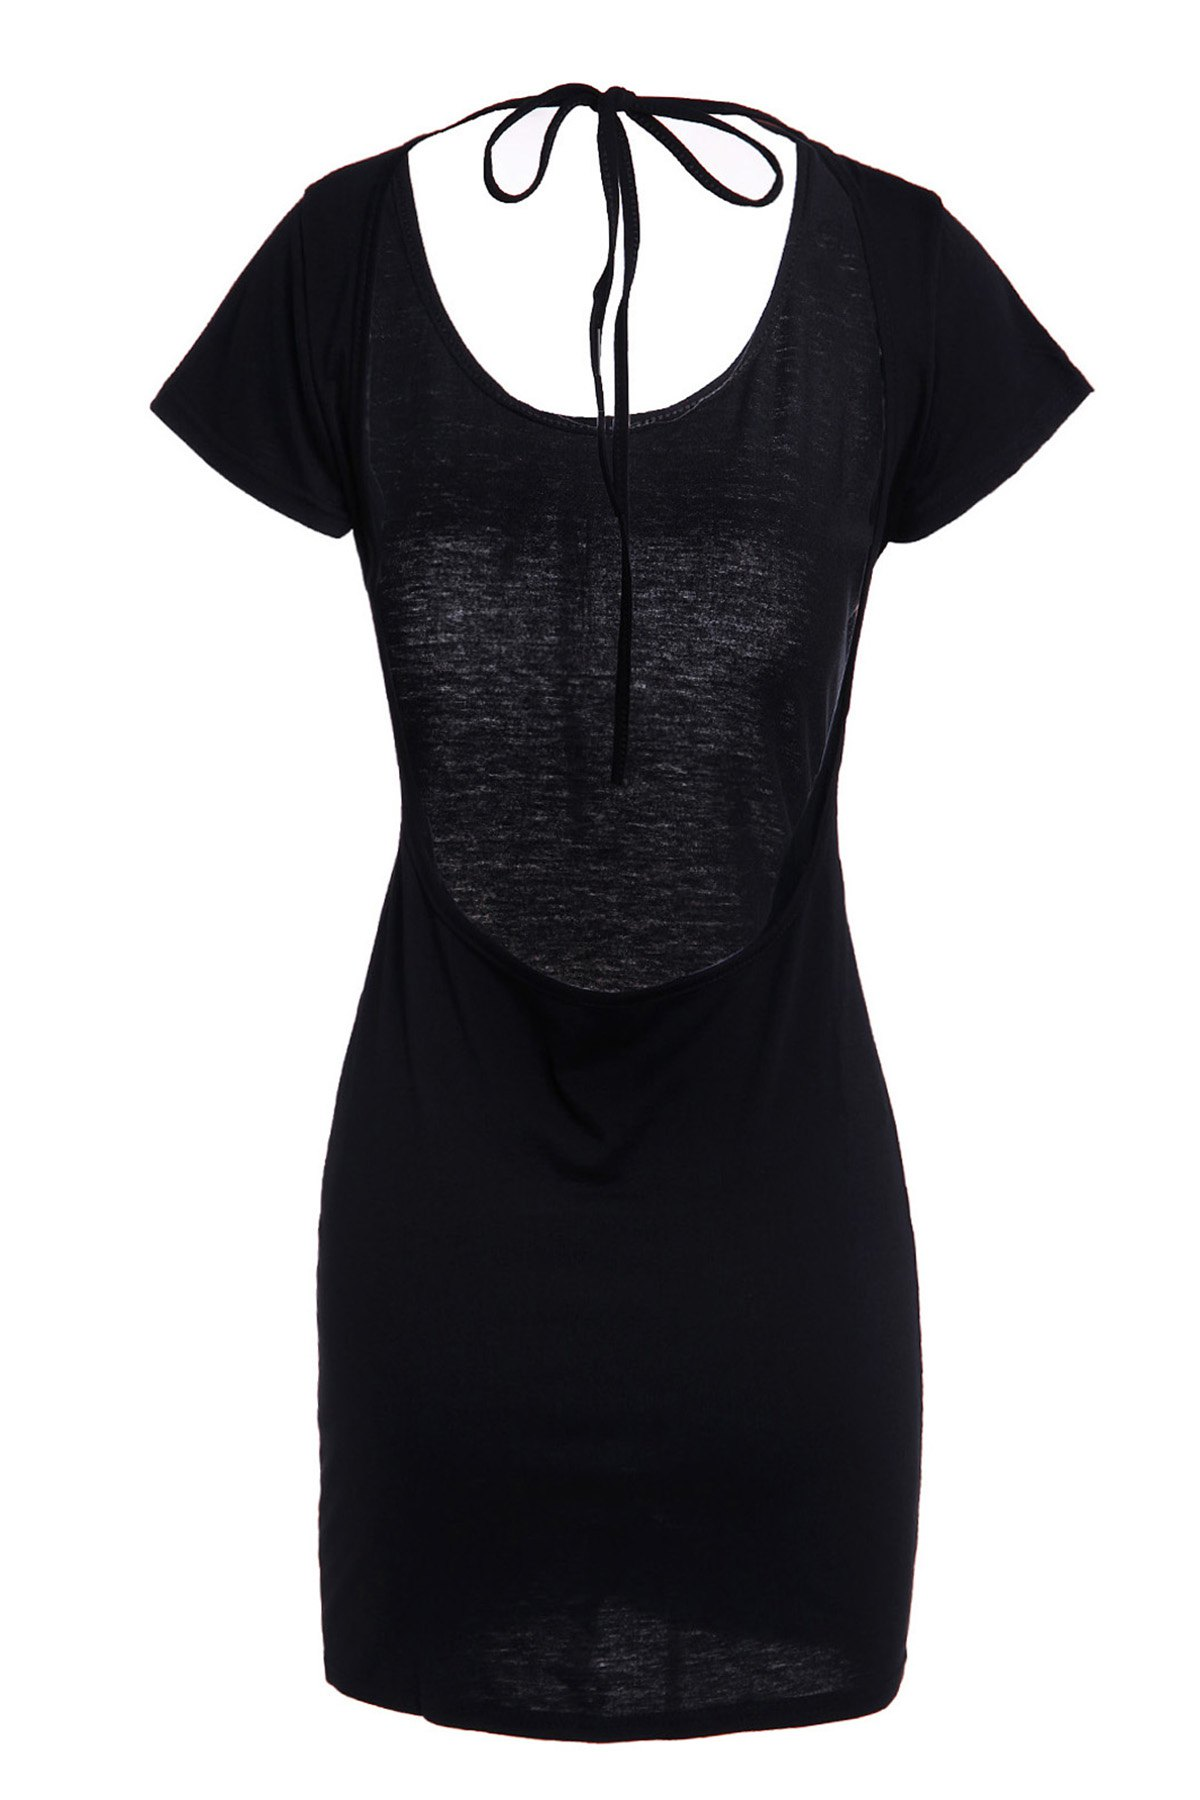 Sexy Women's Scoop Neck Short Sleeve Backless Mini Dress